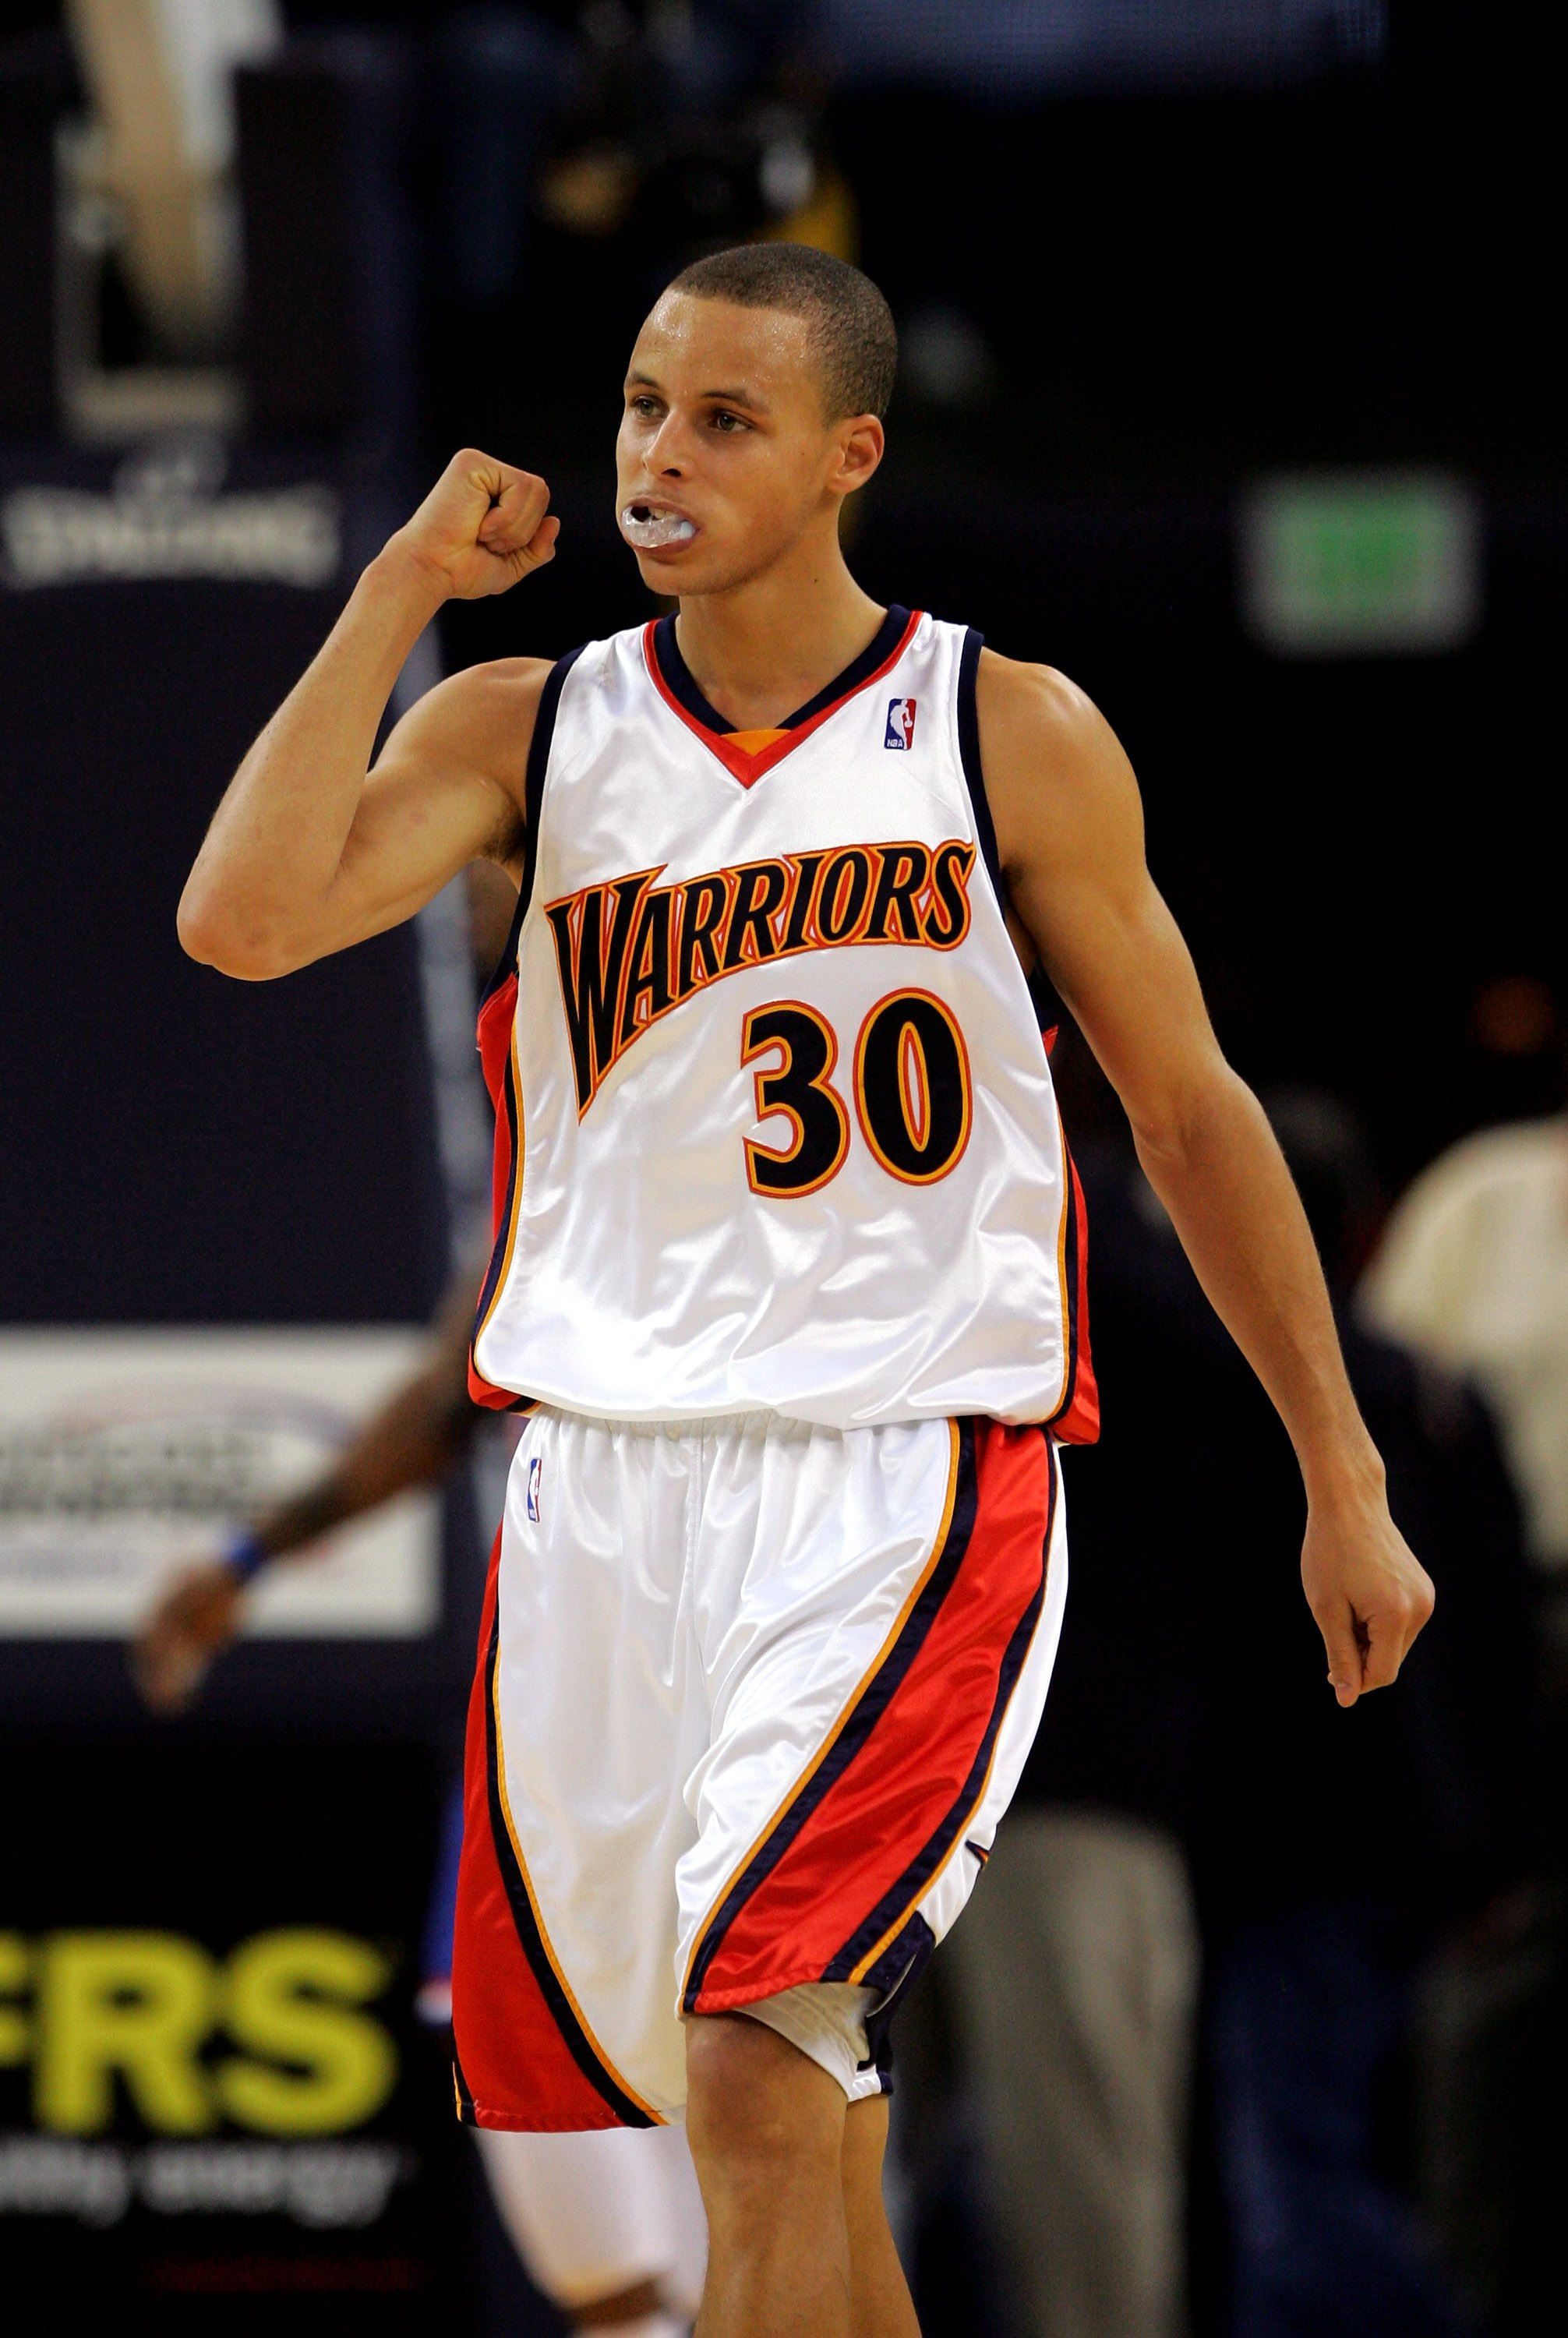 OAKLAND, CA - JANUARY 11:  Stephen Curry #30 of the Golden State Warriors reacts after a play during their game against the Cleveland Cavaliers at Oracle Arena on January 11, 2010 in Oakland, California.  NOTE TO USER: User expressly acknowledges and agre